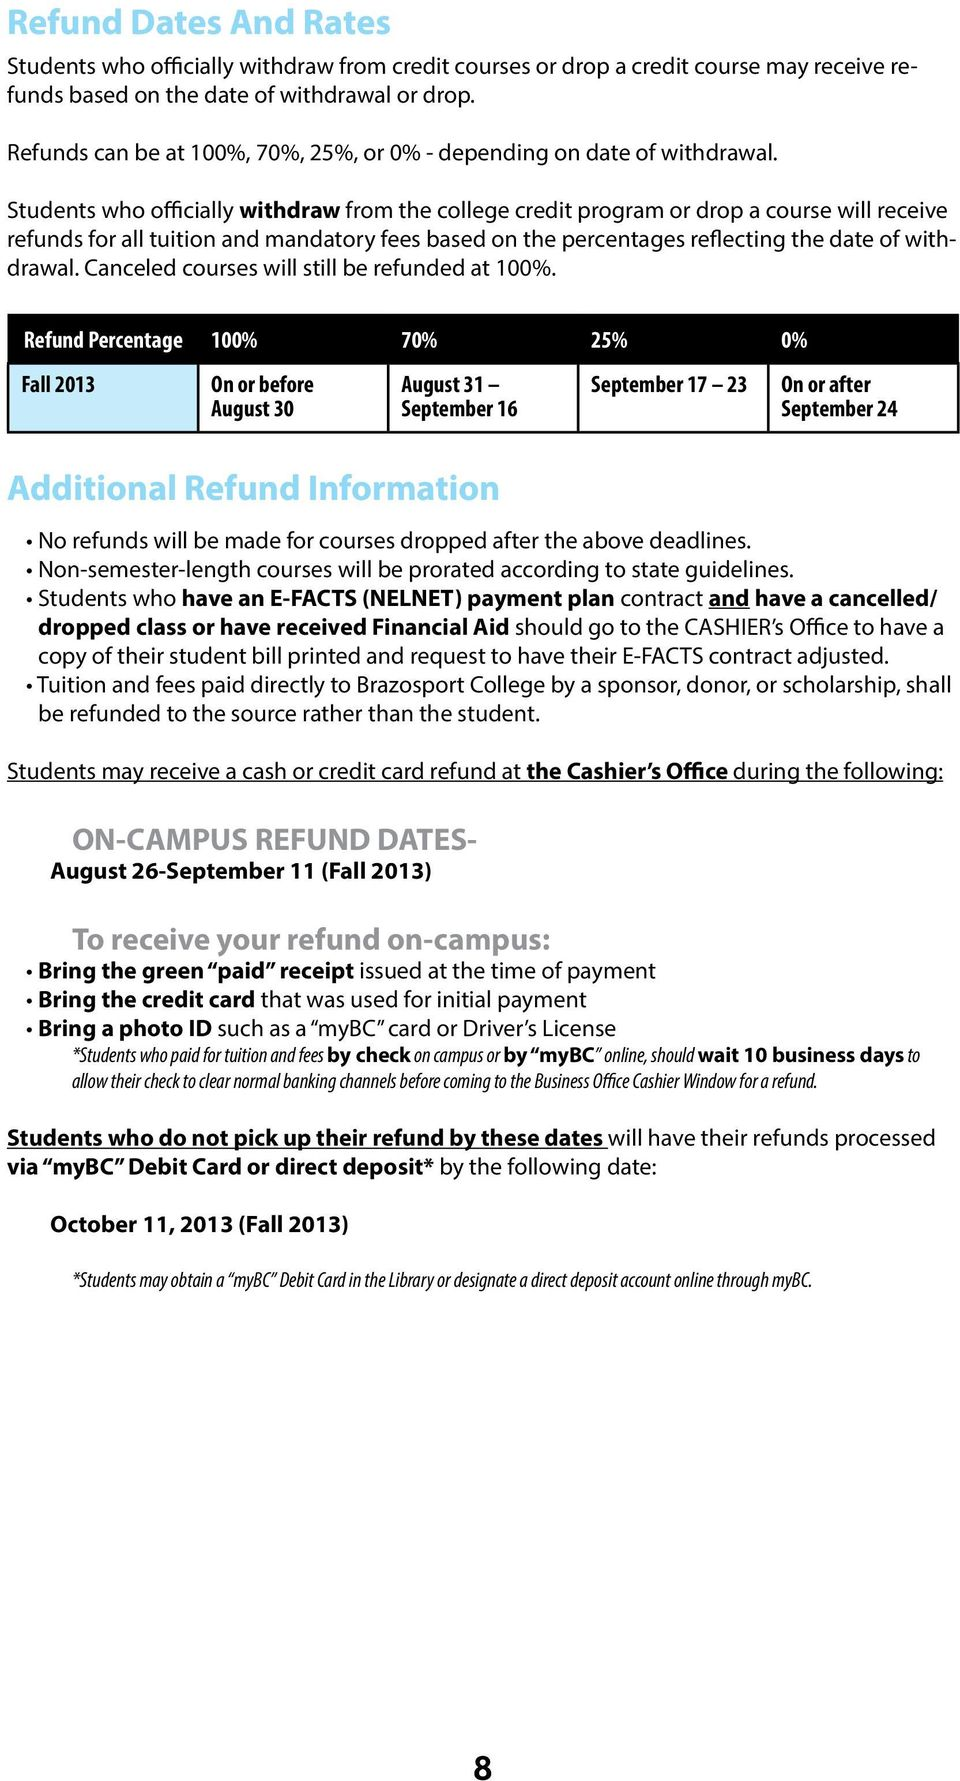 Students who officially withdraw from the college credit program or drop a course will receive refunds for all tuition and mandatory fees based on the percentages reflecting the date of withdrawal.